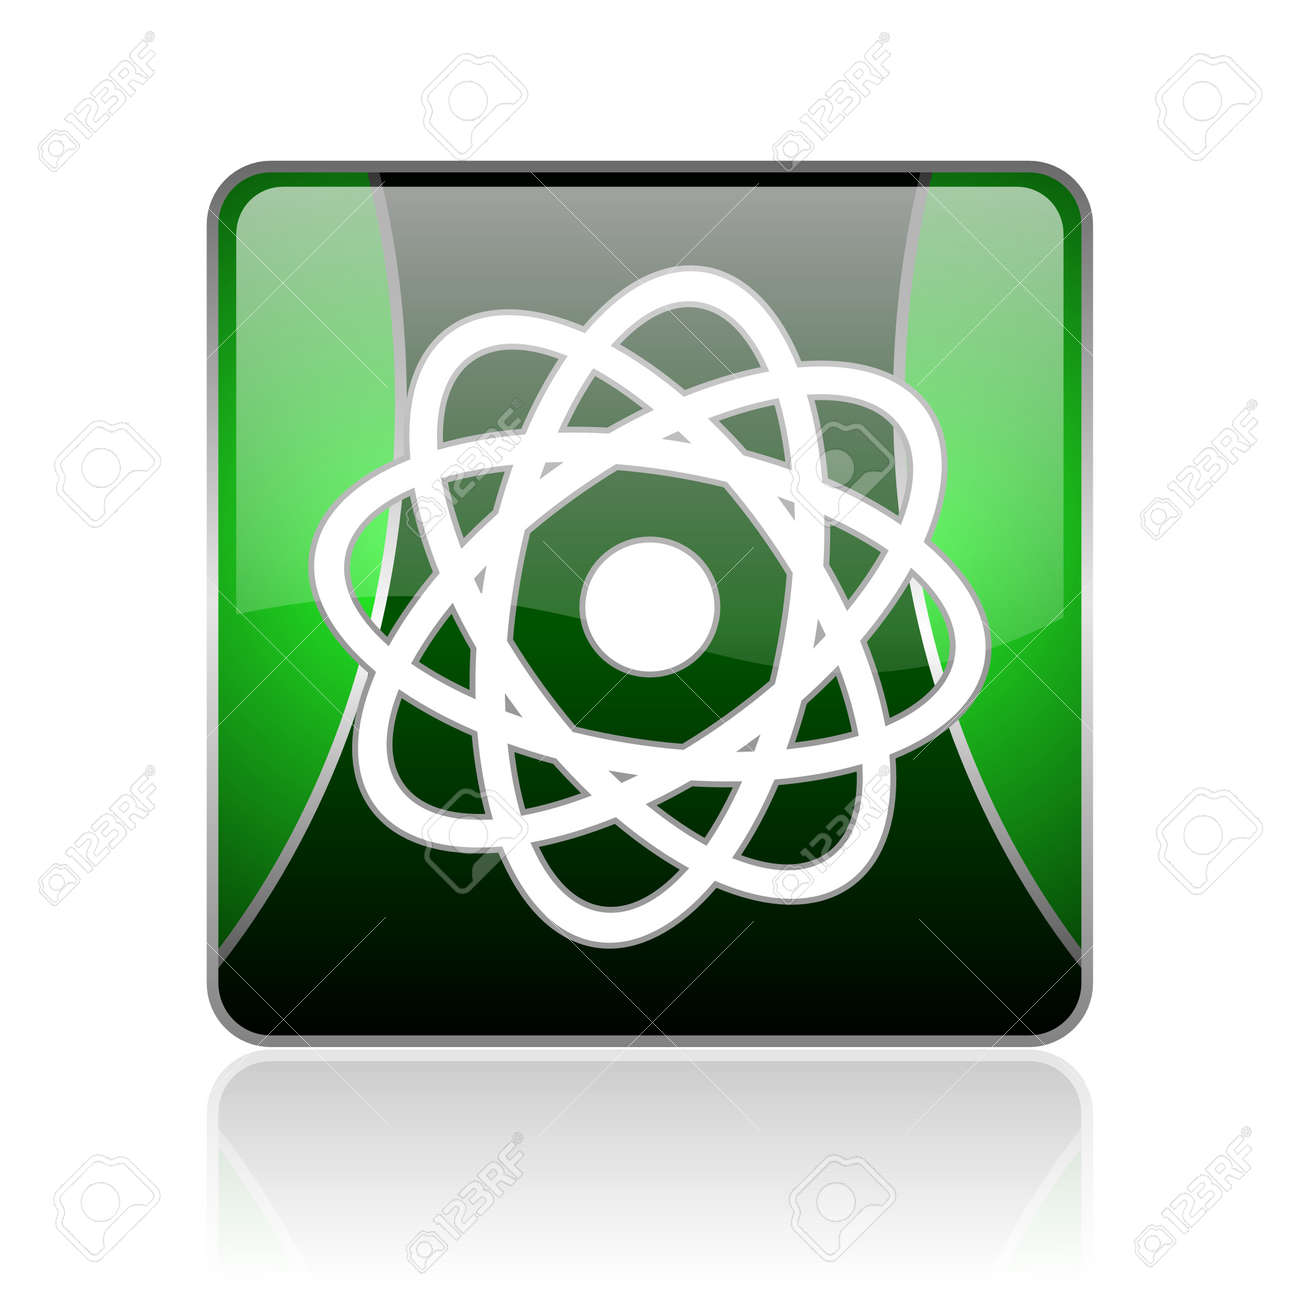 black and green square glossy internet icon on white background with reflaction Stock Photo - 18747694